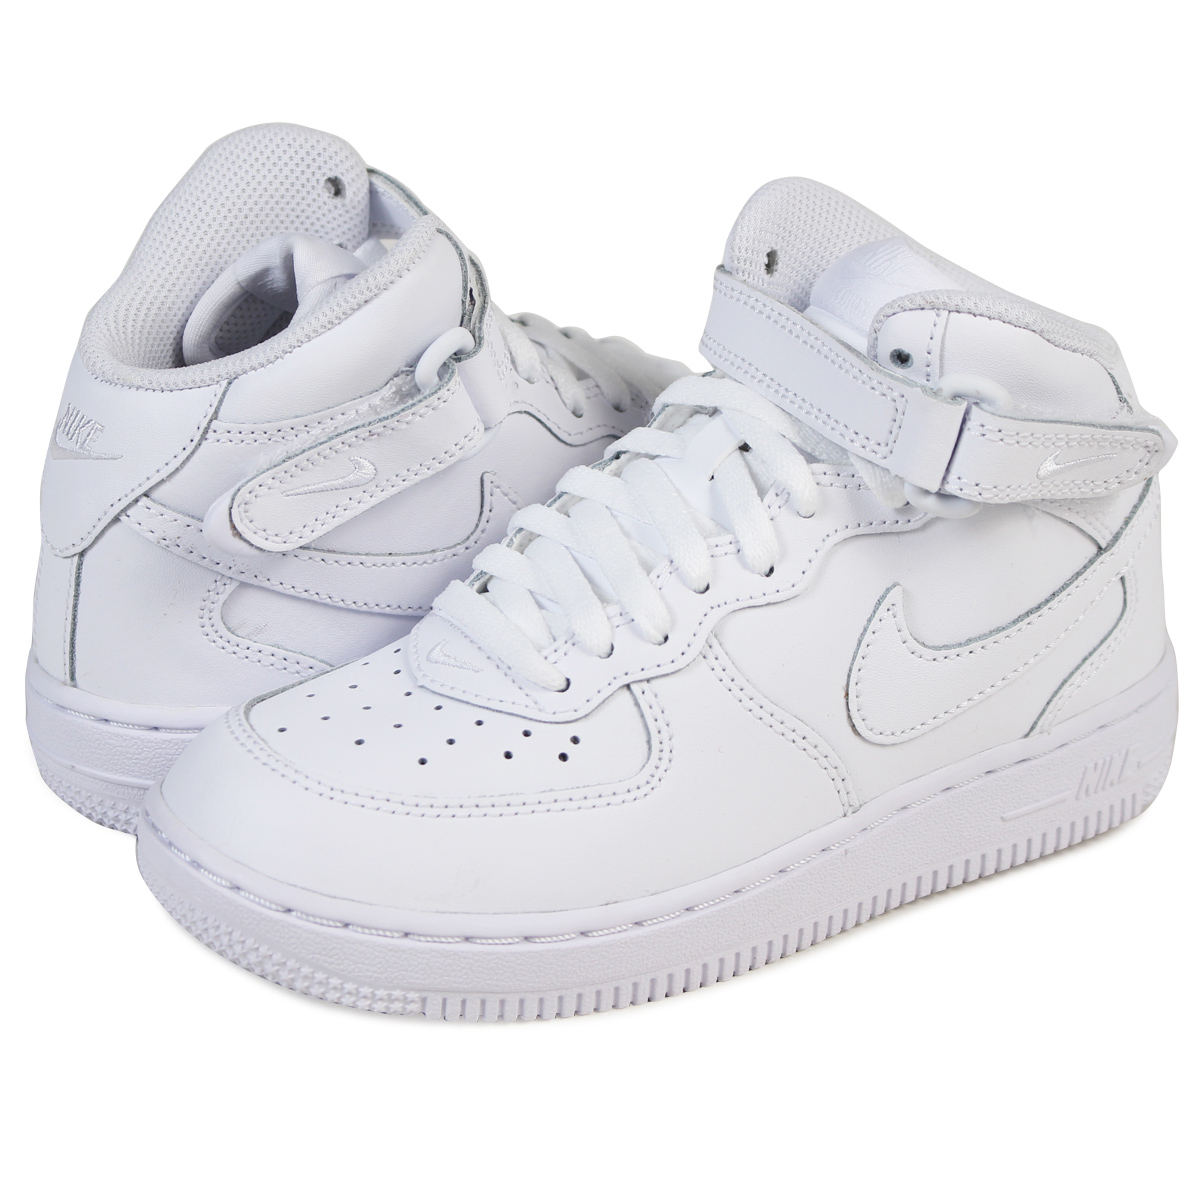 72261817c7322e  SOLD OUT  Nike NIKE kids   AIR FORCE 1 MID PS sneakers air force 1 mid  preschool leather junior kids PRESCHOOL 314196-113 white